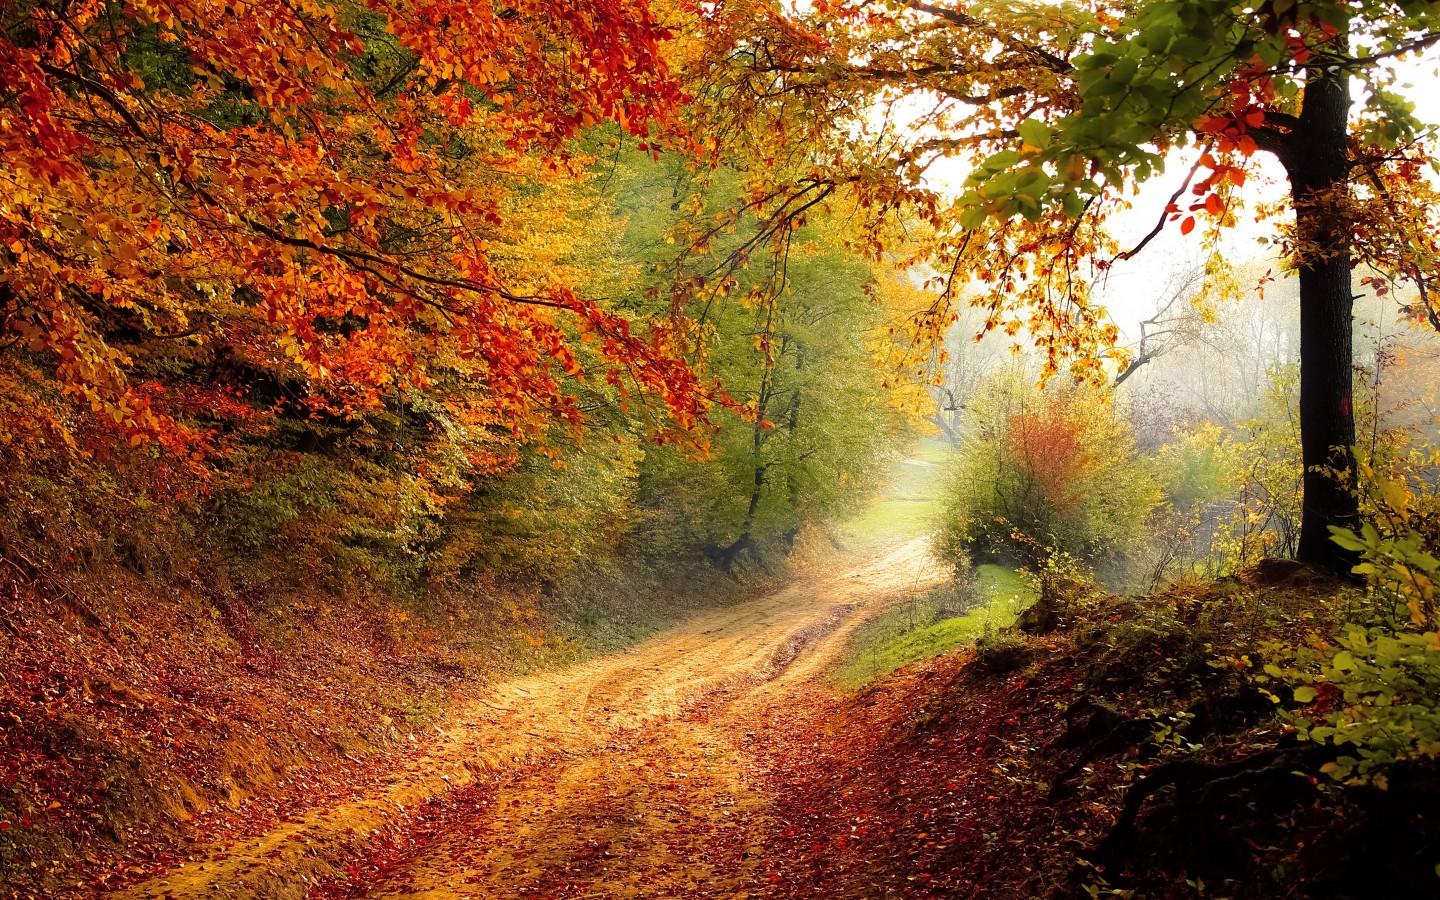 Fall Desktop Fantasy Wallpaper Beautiful Autumn Road Wallpapers Hd Wallpapers Id 16828